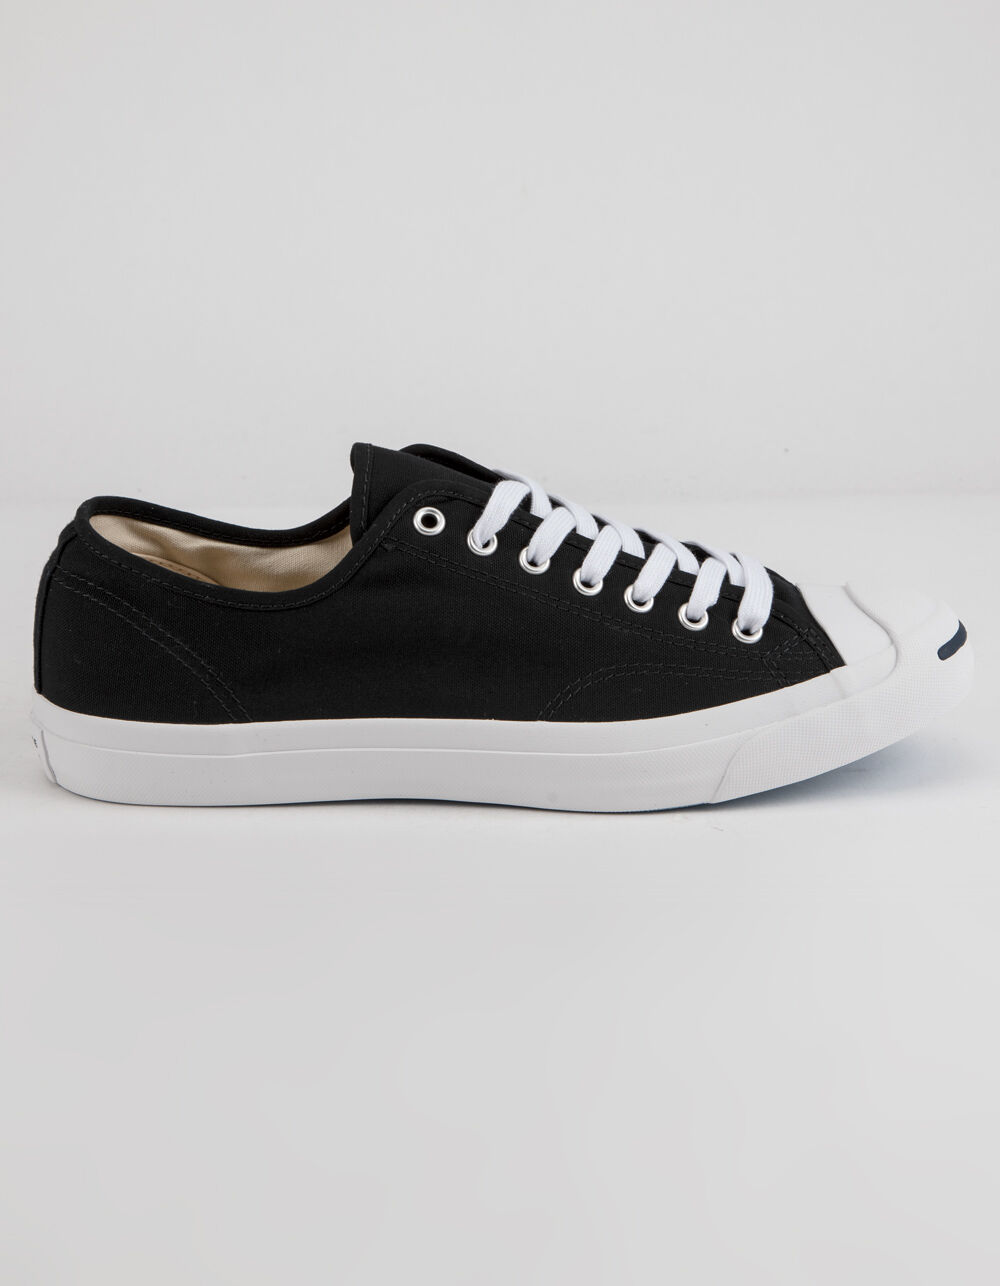 Image of CONVERSE JACK PURCELL CP OX BLACK & WHITE LOW TOP SHOES